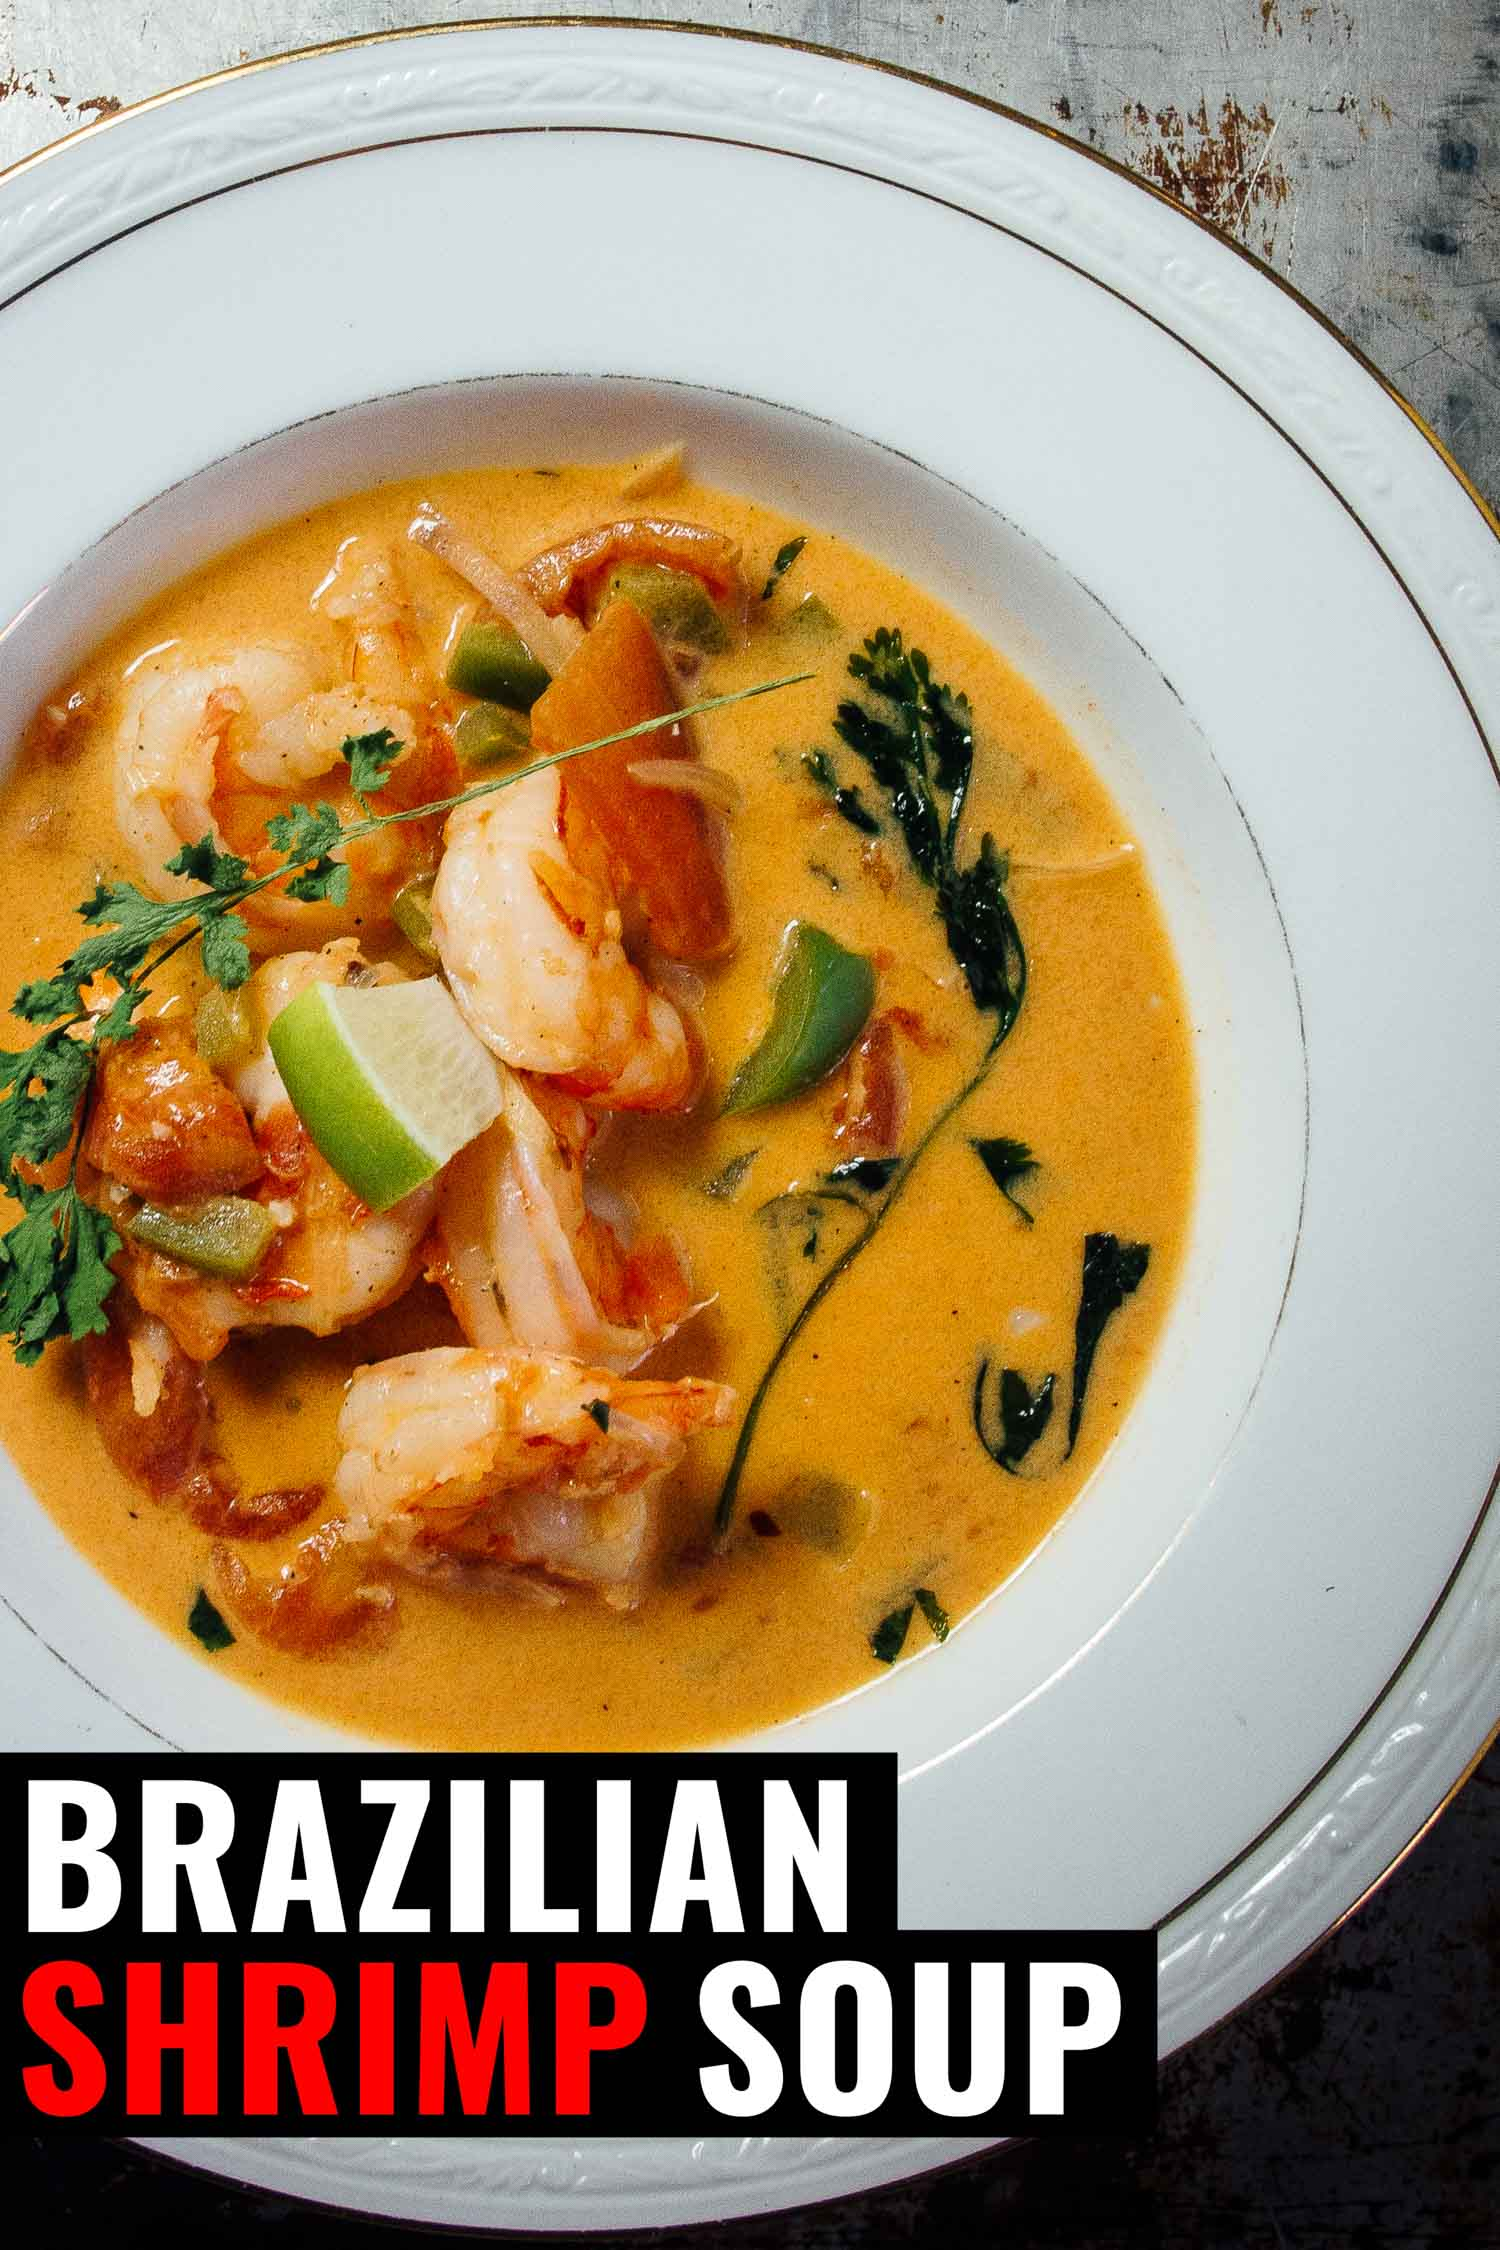 Brazilian shrimp soup in a white bowl on a rustic background